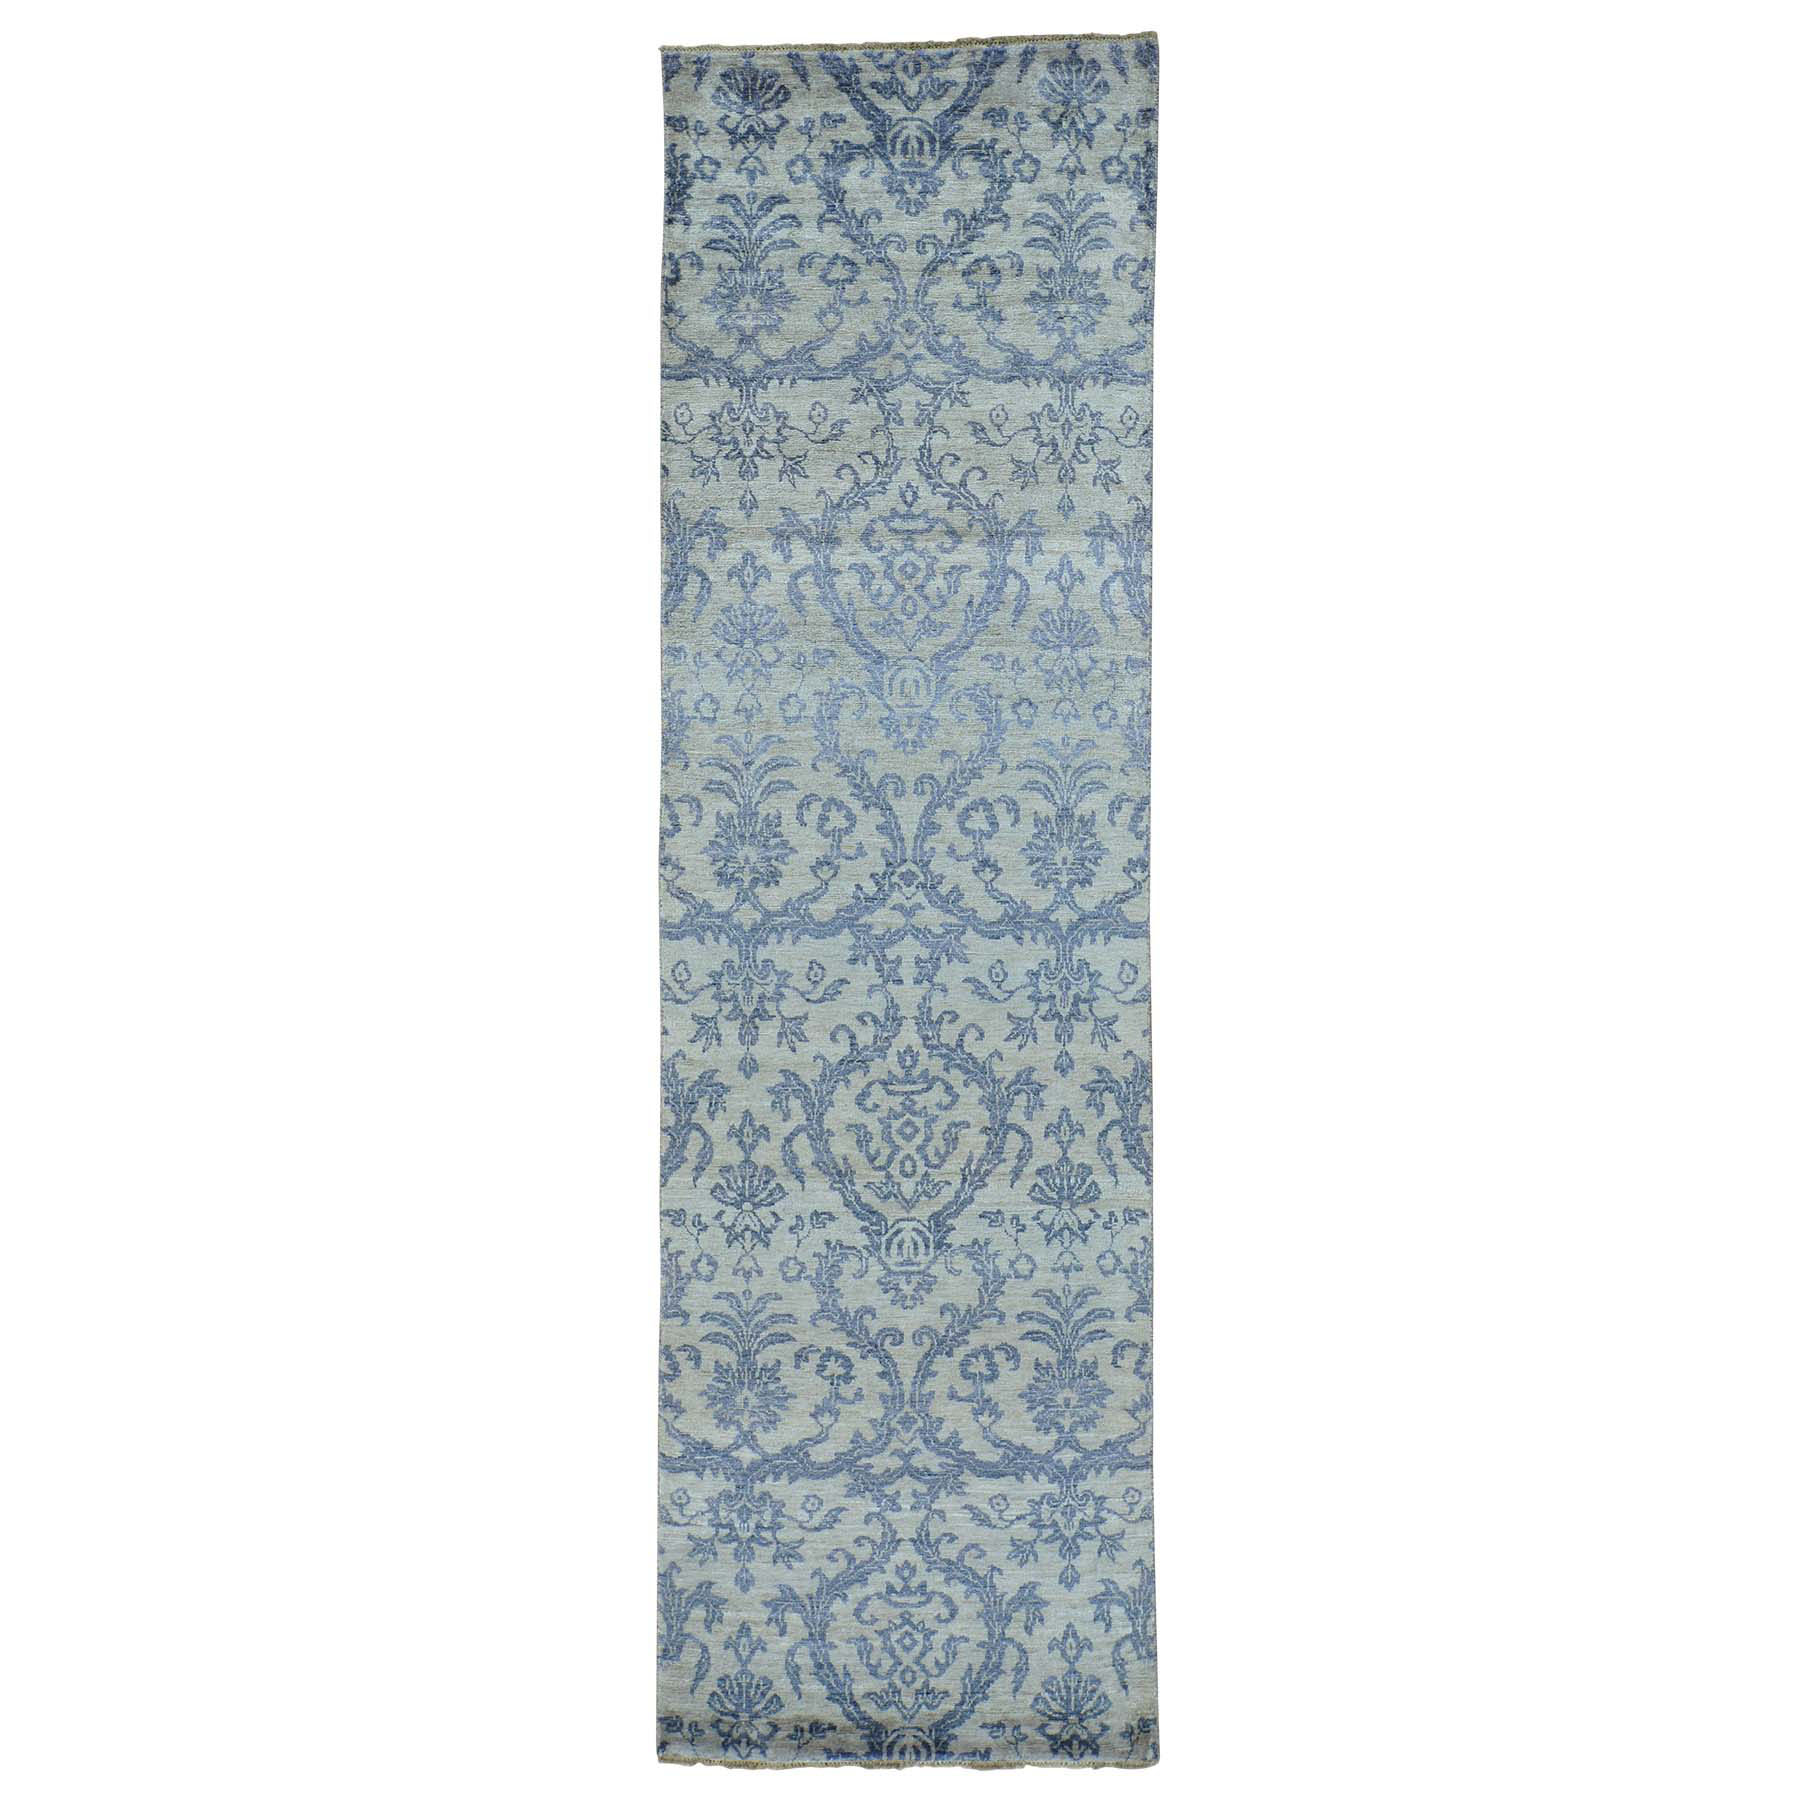 Mid Century Modern Collection Hand Knotted Blue Rug No: 0154816